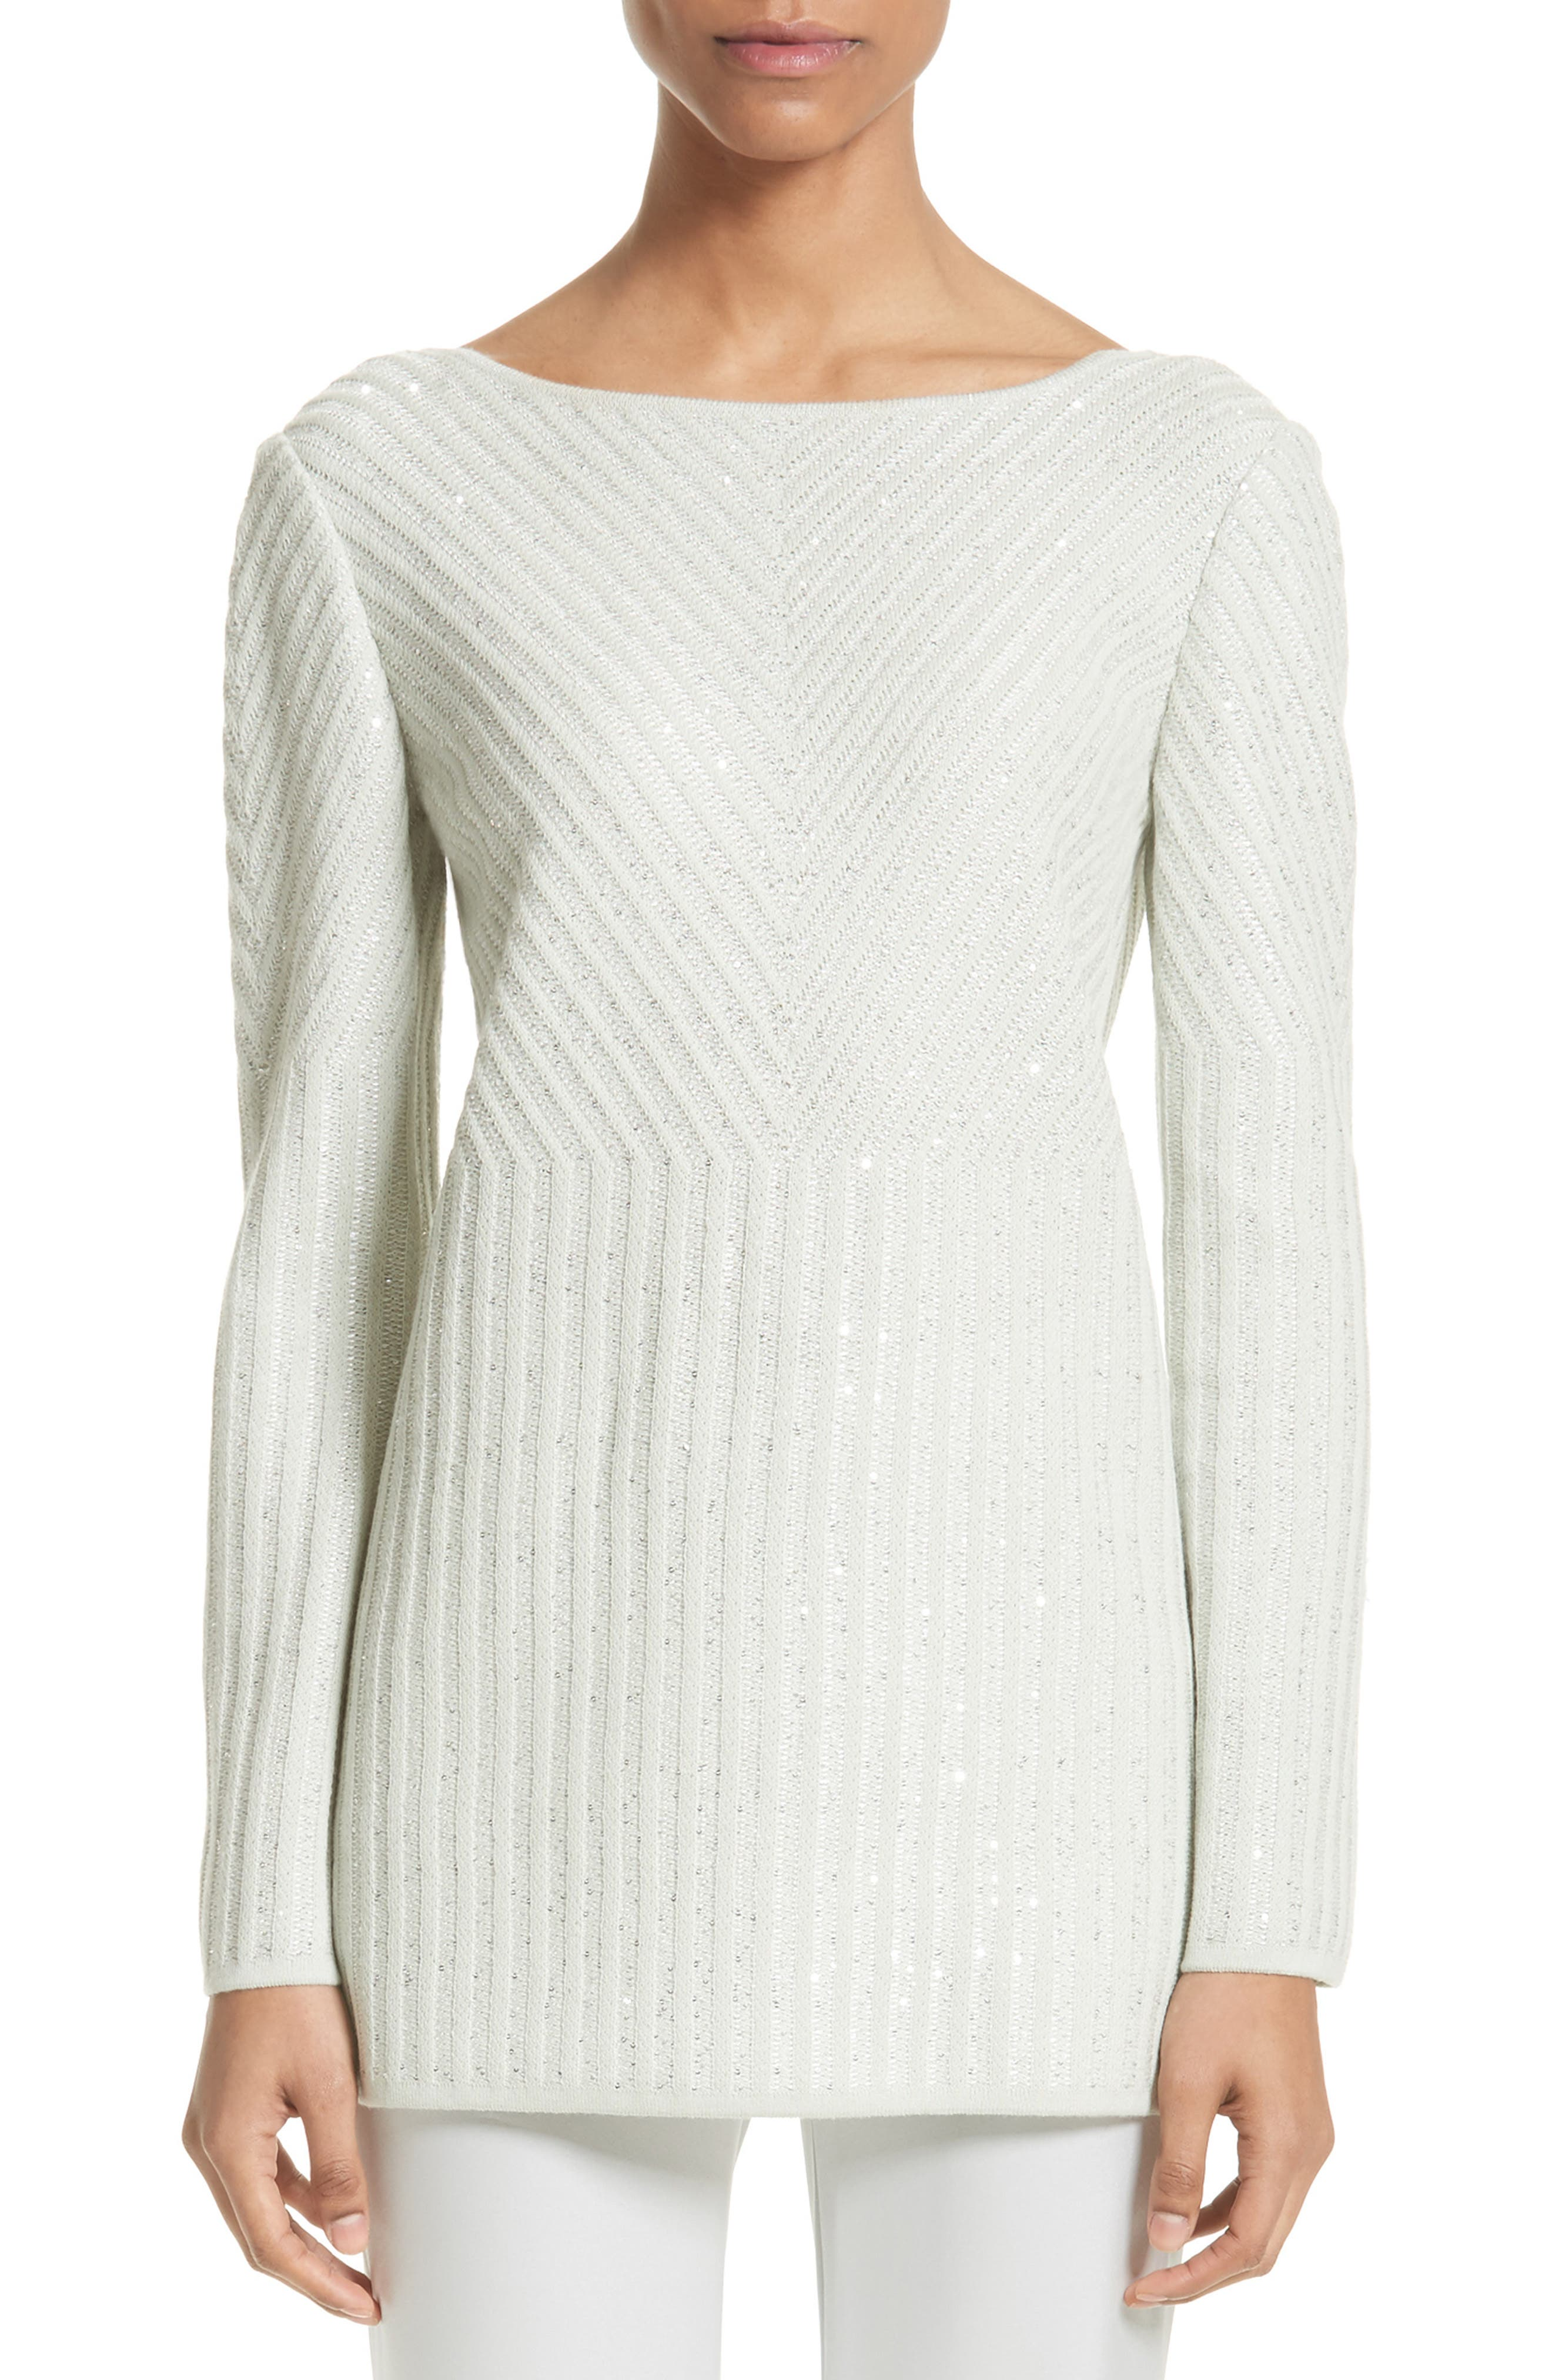 Alternate Image 1 Selected - St. John Collection Sparkle Engineered Rib Sweater